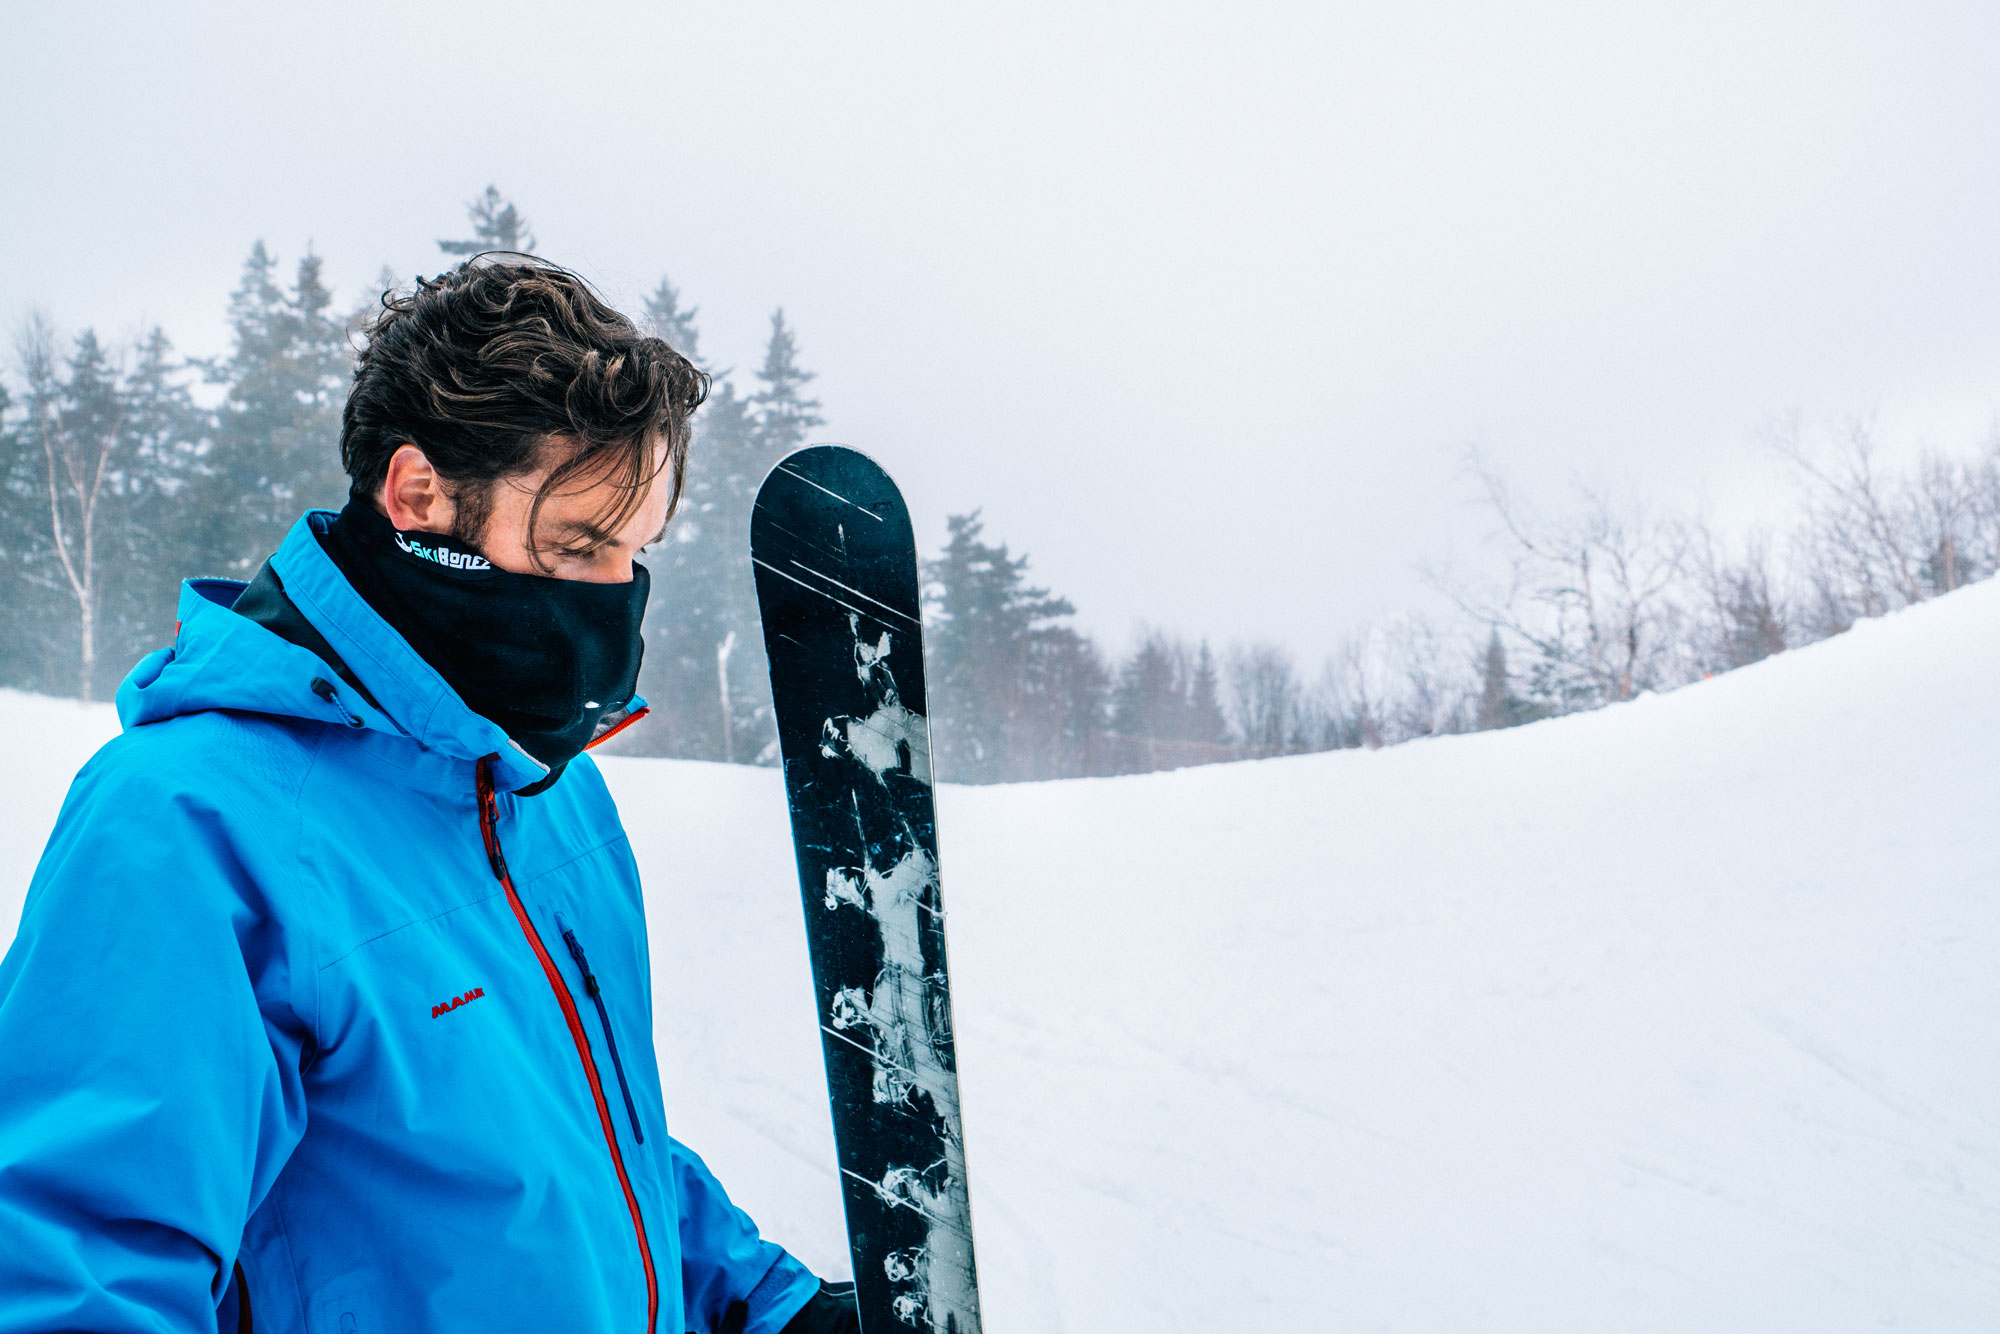 You see a lot of exposed faces on the slopes. - The reason? Ski masks kind of suck. Sure, they'll keep you warm, but only while fogging up your mask, soaking up your sweat, and generally making it harder to breathe. Some people would rather just be cold.